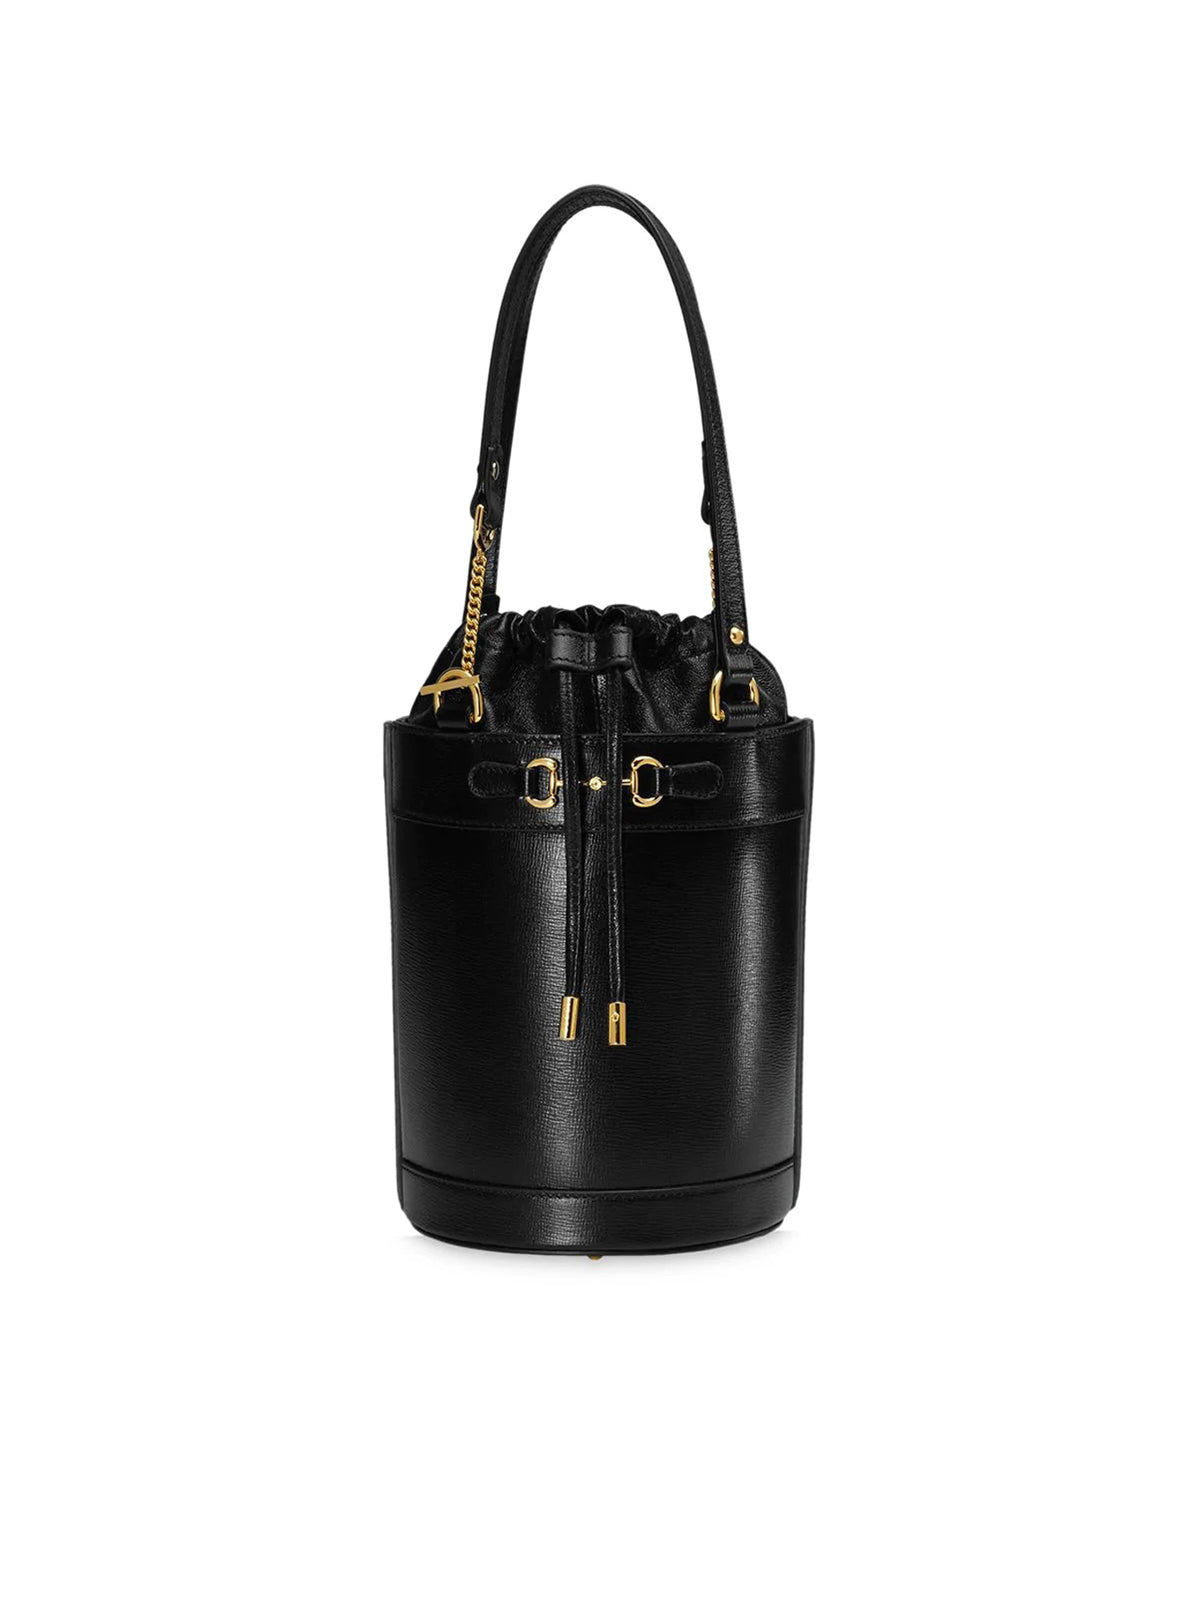 Gucci Horsebit 1955 bucket bag